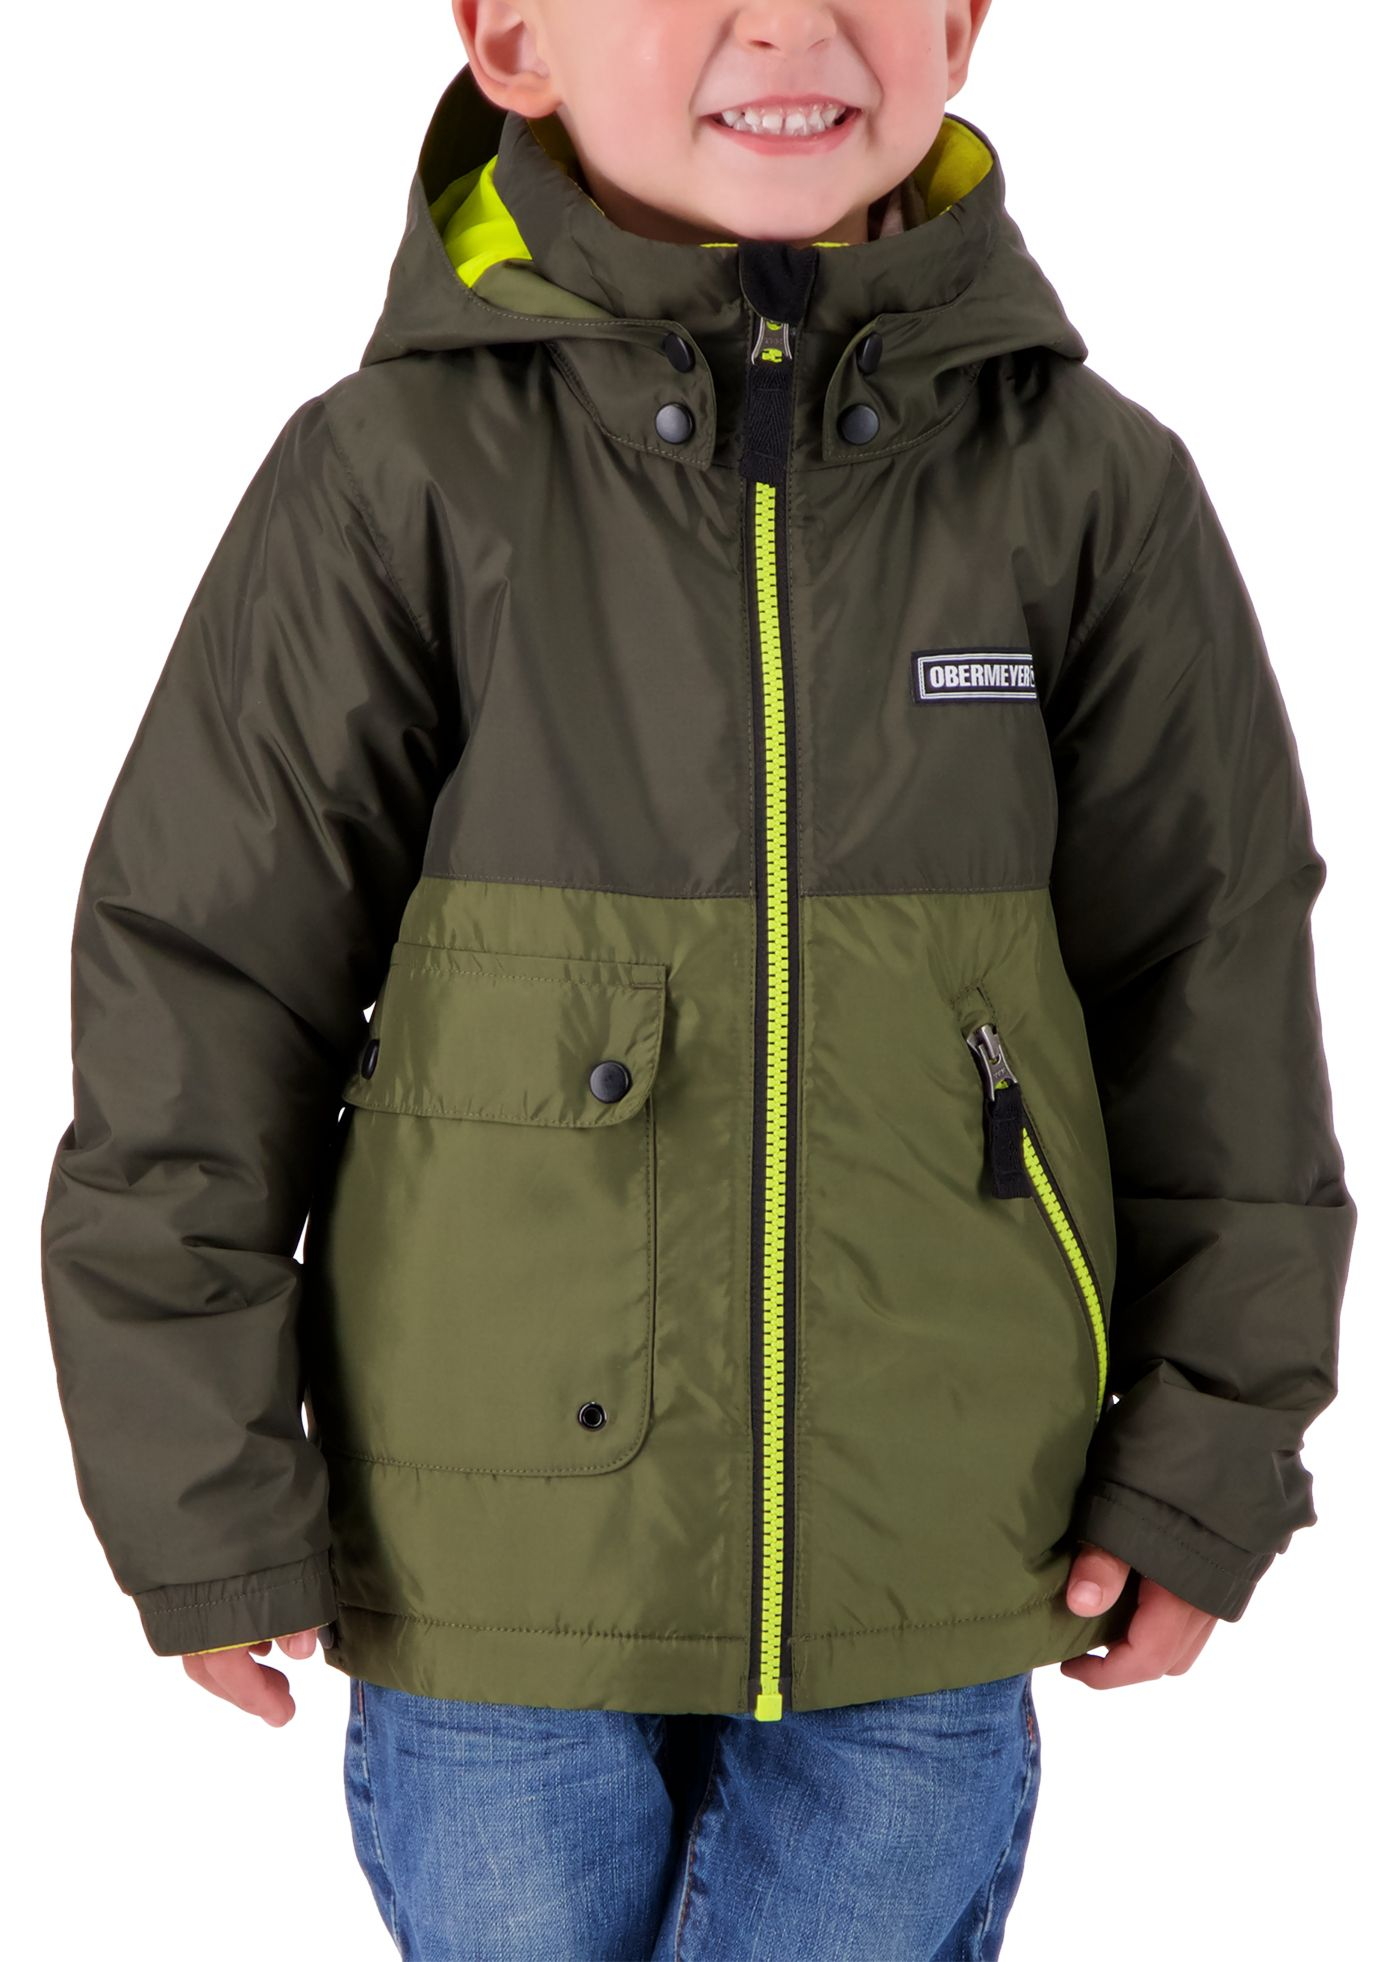 Obermeyer Boys' Landon All Season Jacket